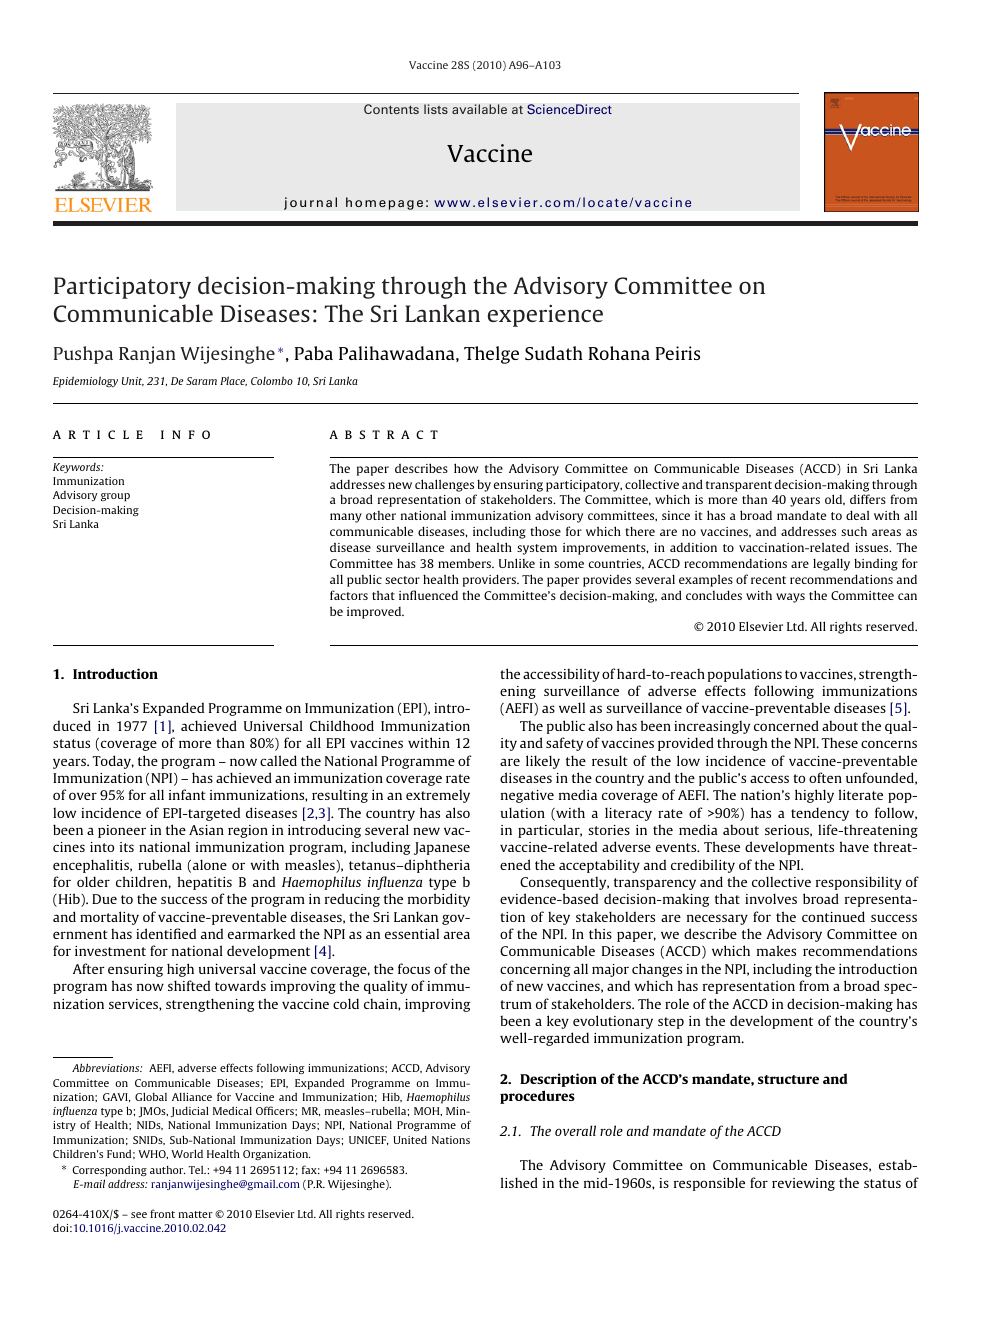 Participatory decision-making through the Advisory Committee